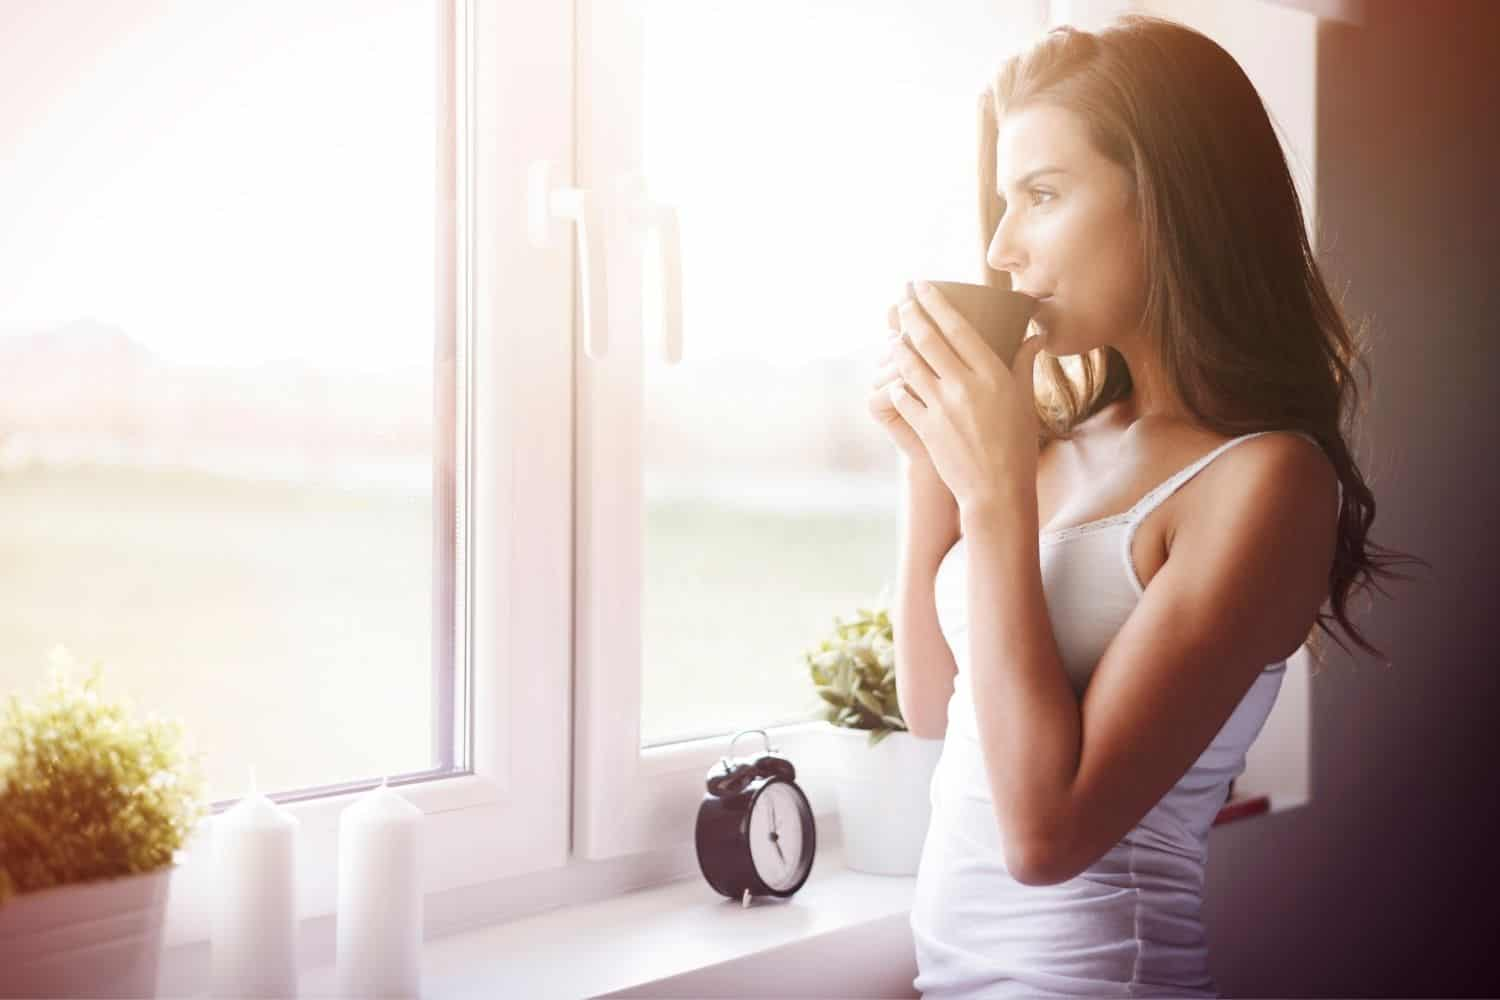 woman drinking her morning coffee to wake her up.